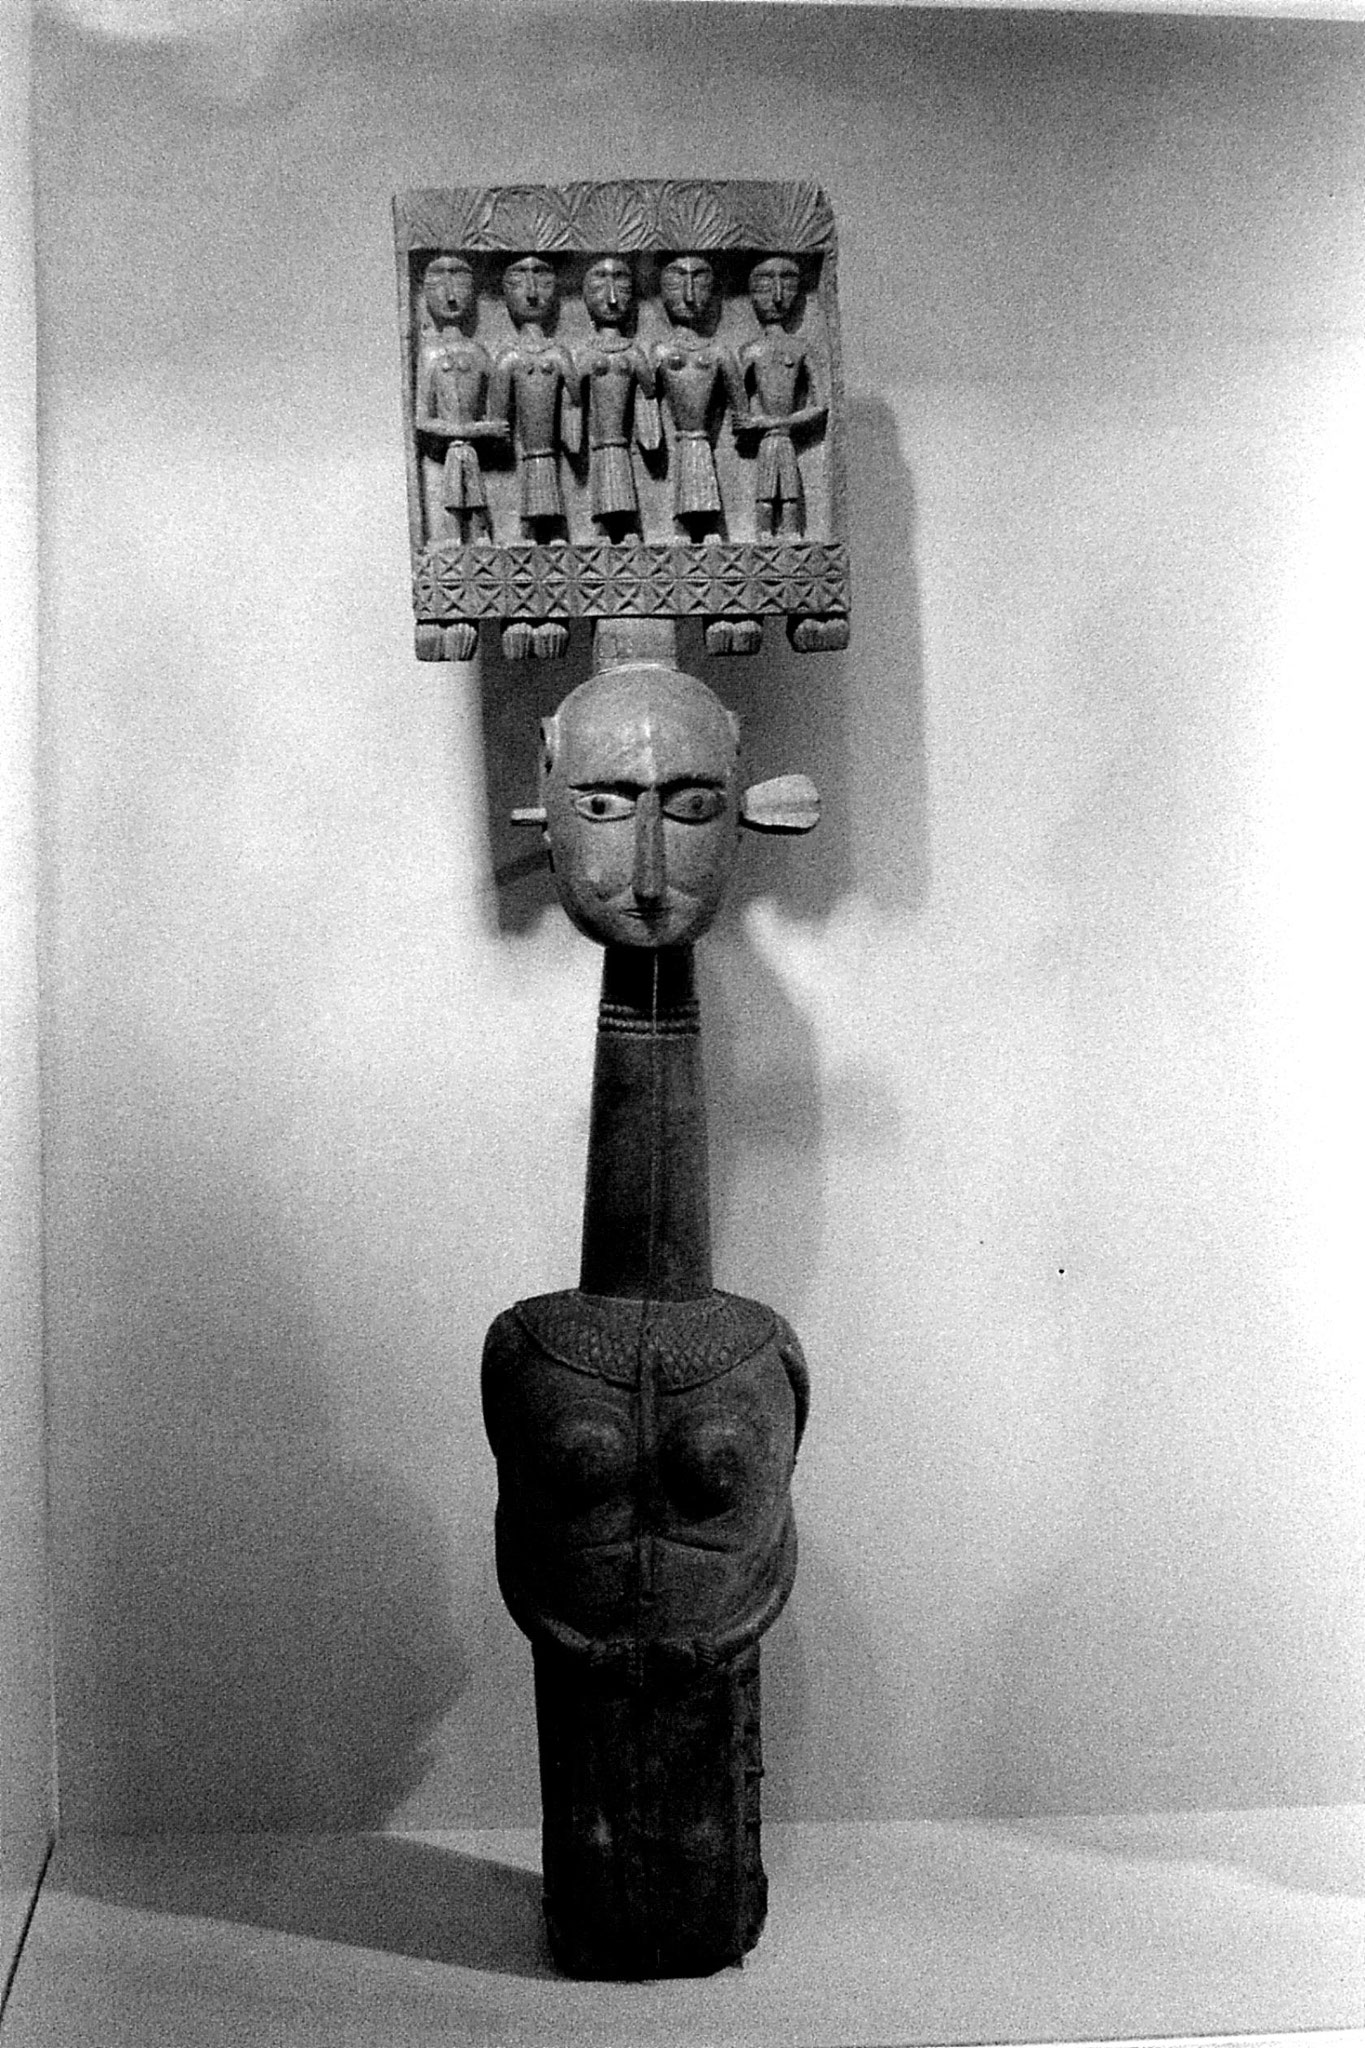 26/11/1989: 31: National Museum,  fiddle from Bihar